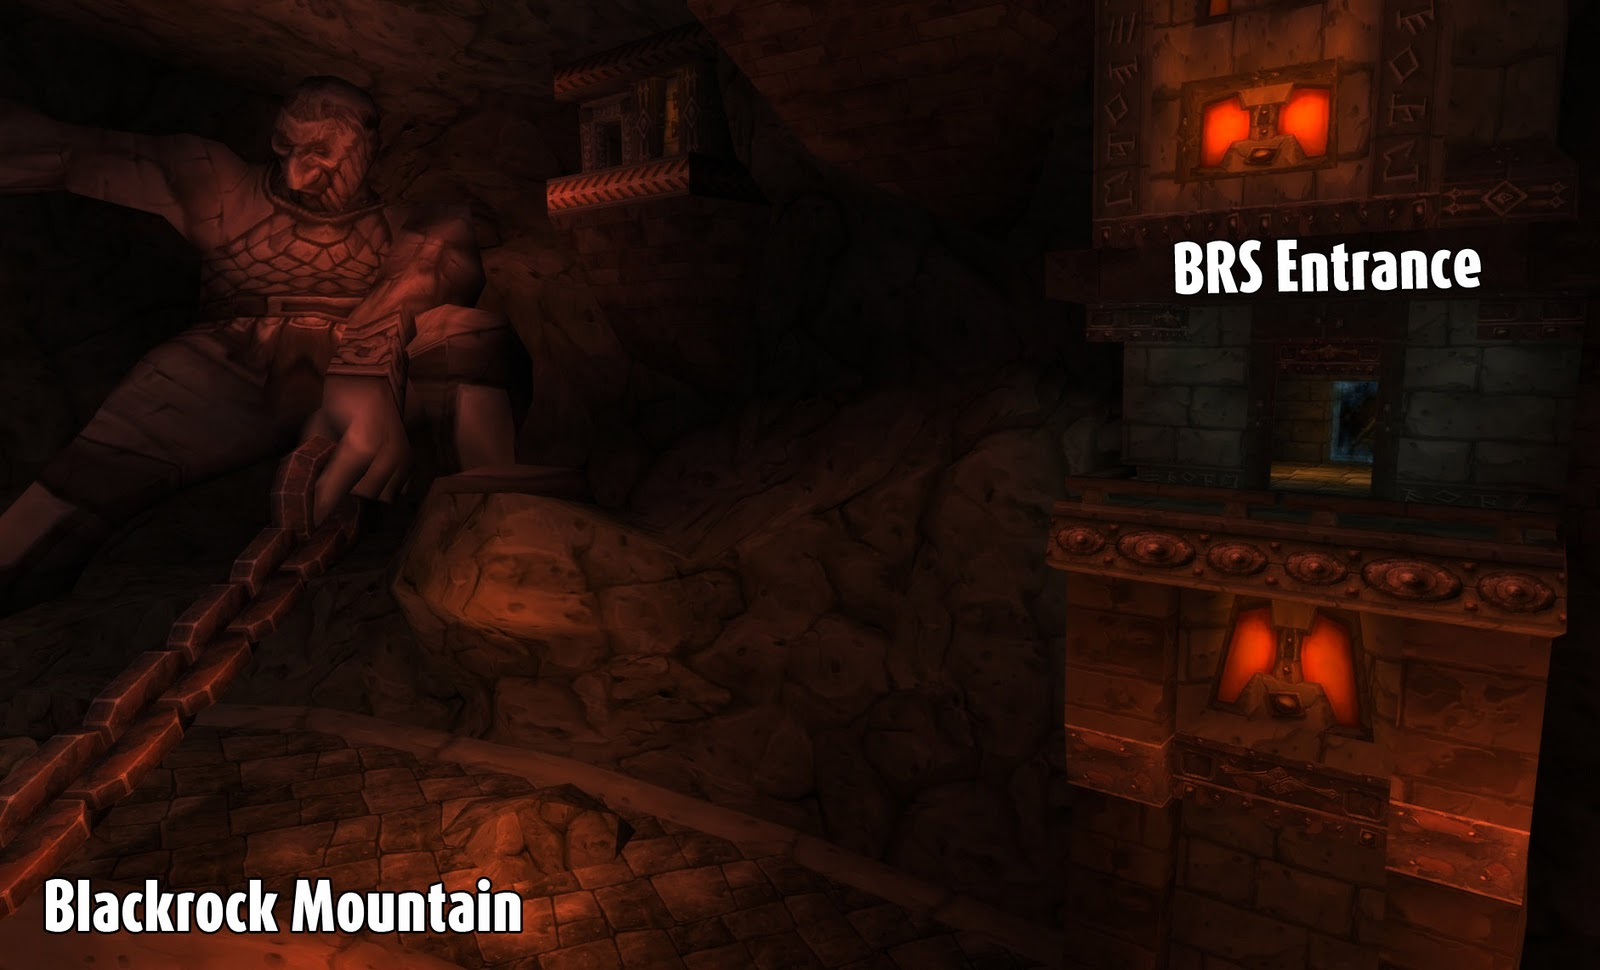 ... Guide - How To Make Gold in WOW: Farming chests in Blackrock Spire